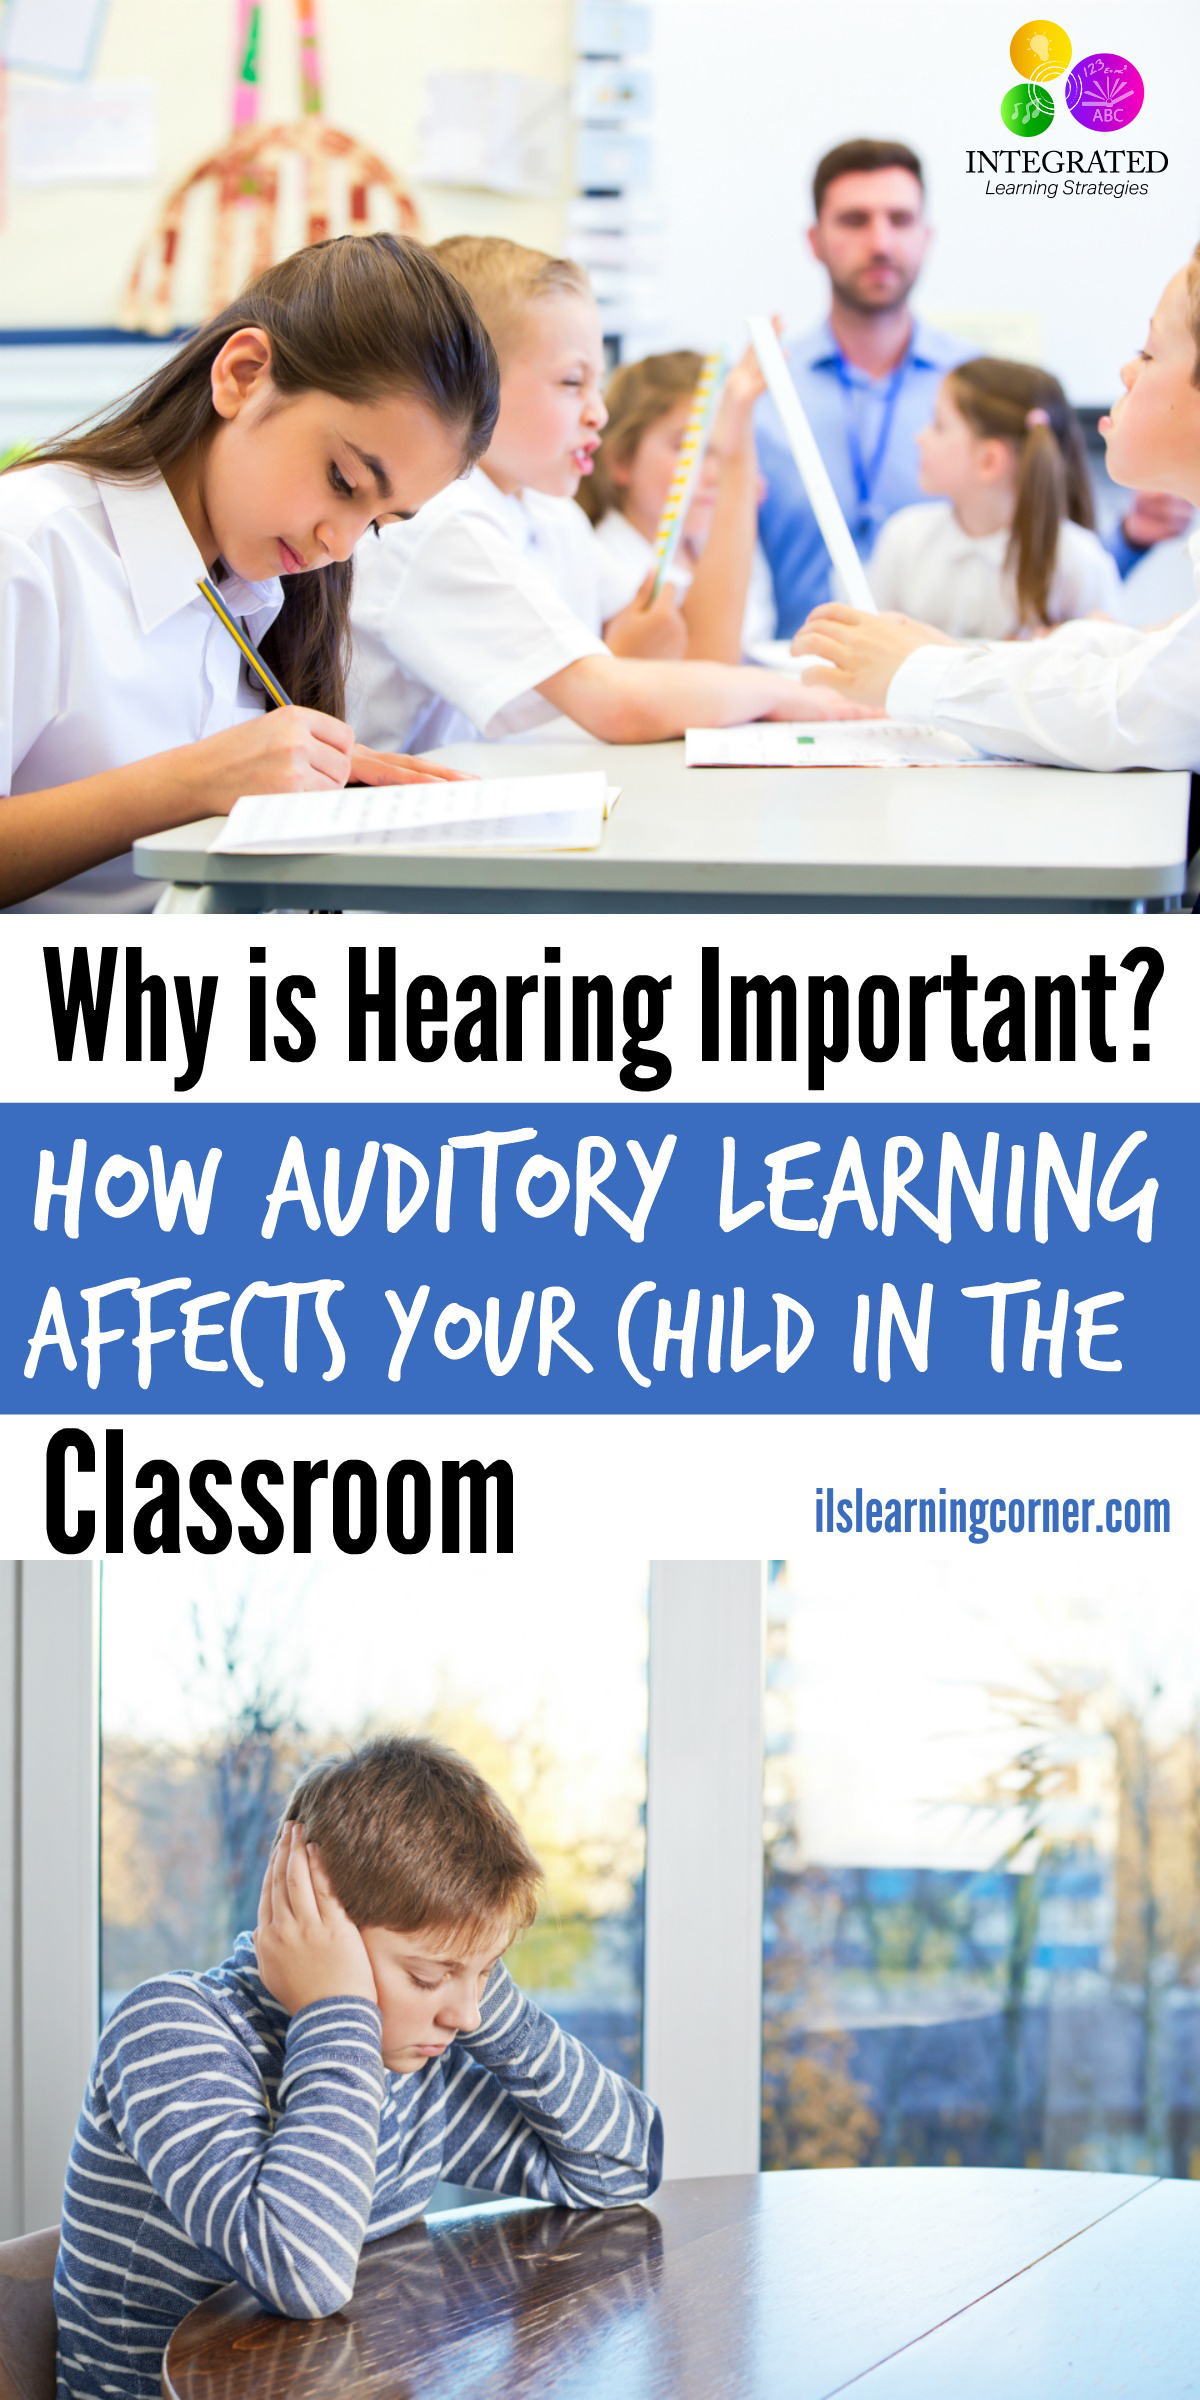 Auditory Learning: How Do We Hear? | ilslearningcorner.com